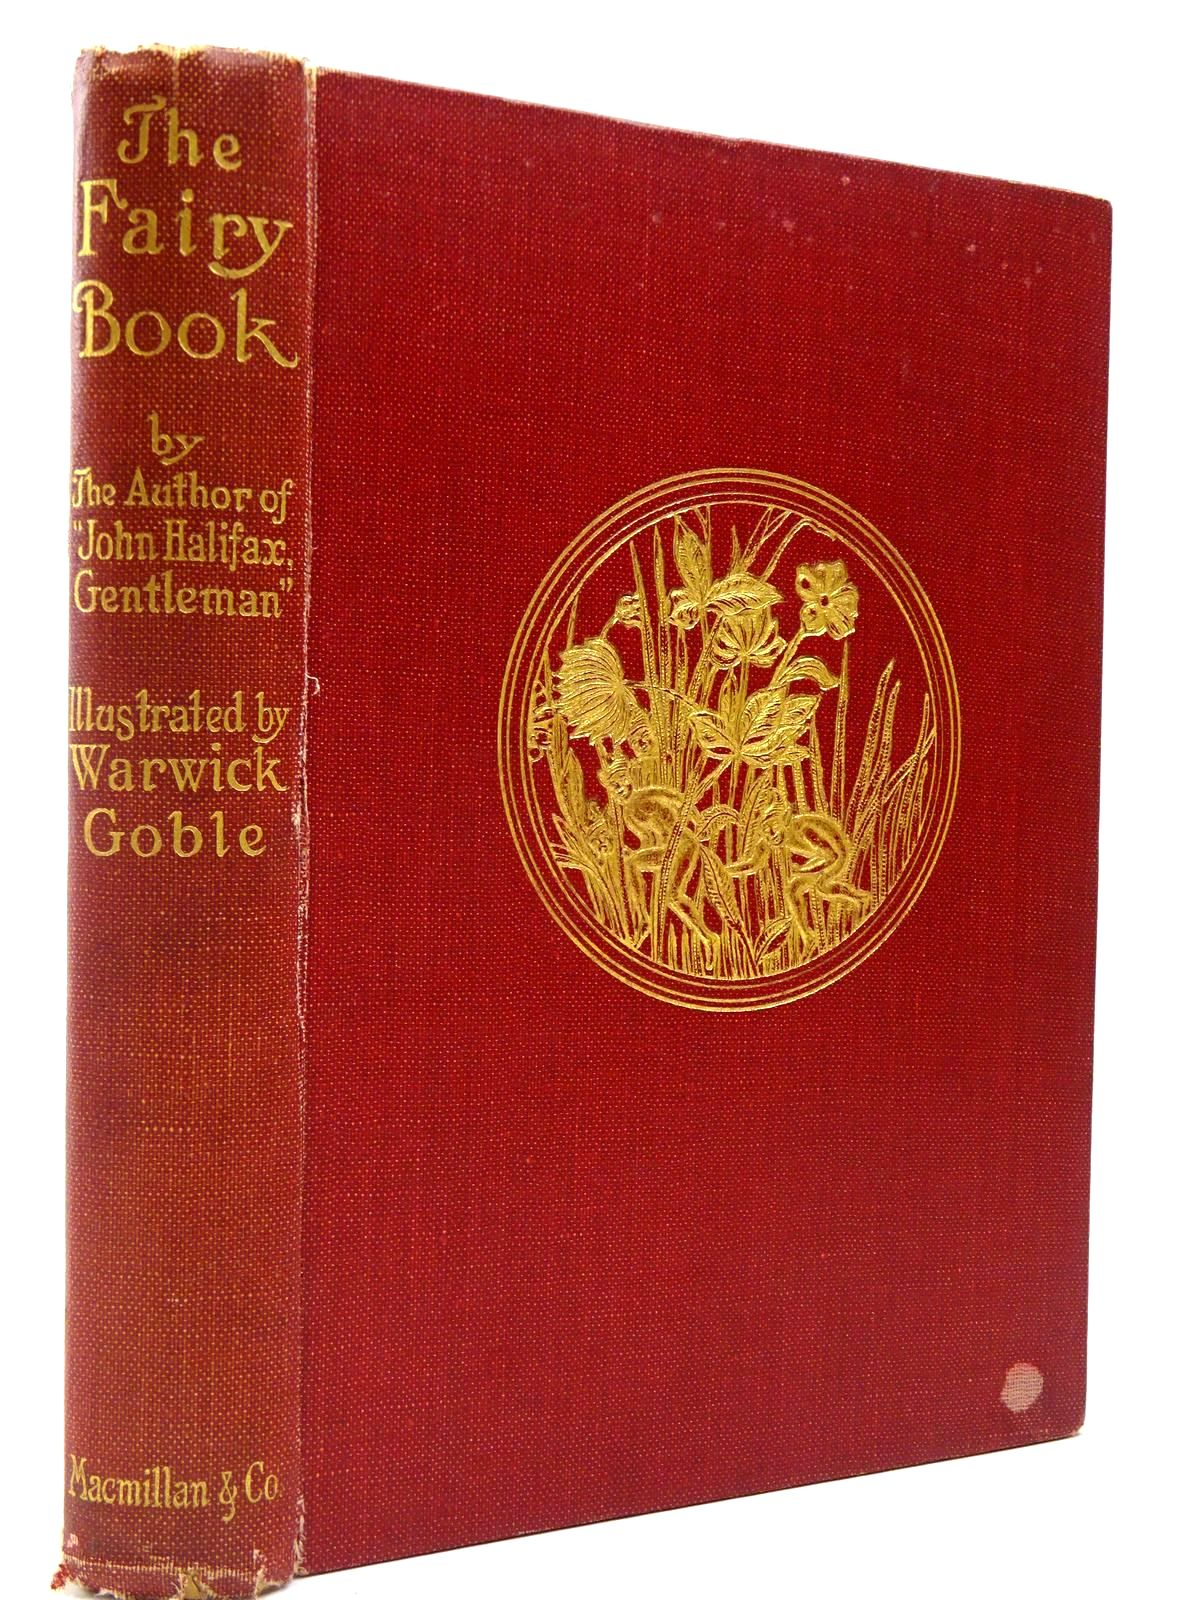 Photo of THE FAIRY BOOK written by Craik, Mrs. Dinah illustrated by Goble, Warwick published by Macmillan & Co. Ltd. (STOCK CODE: 2129973)  for sale by Stella & Rose's Books